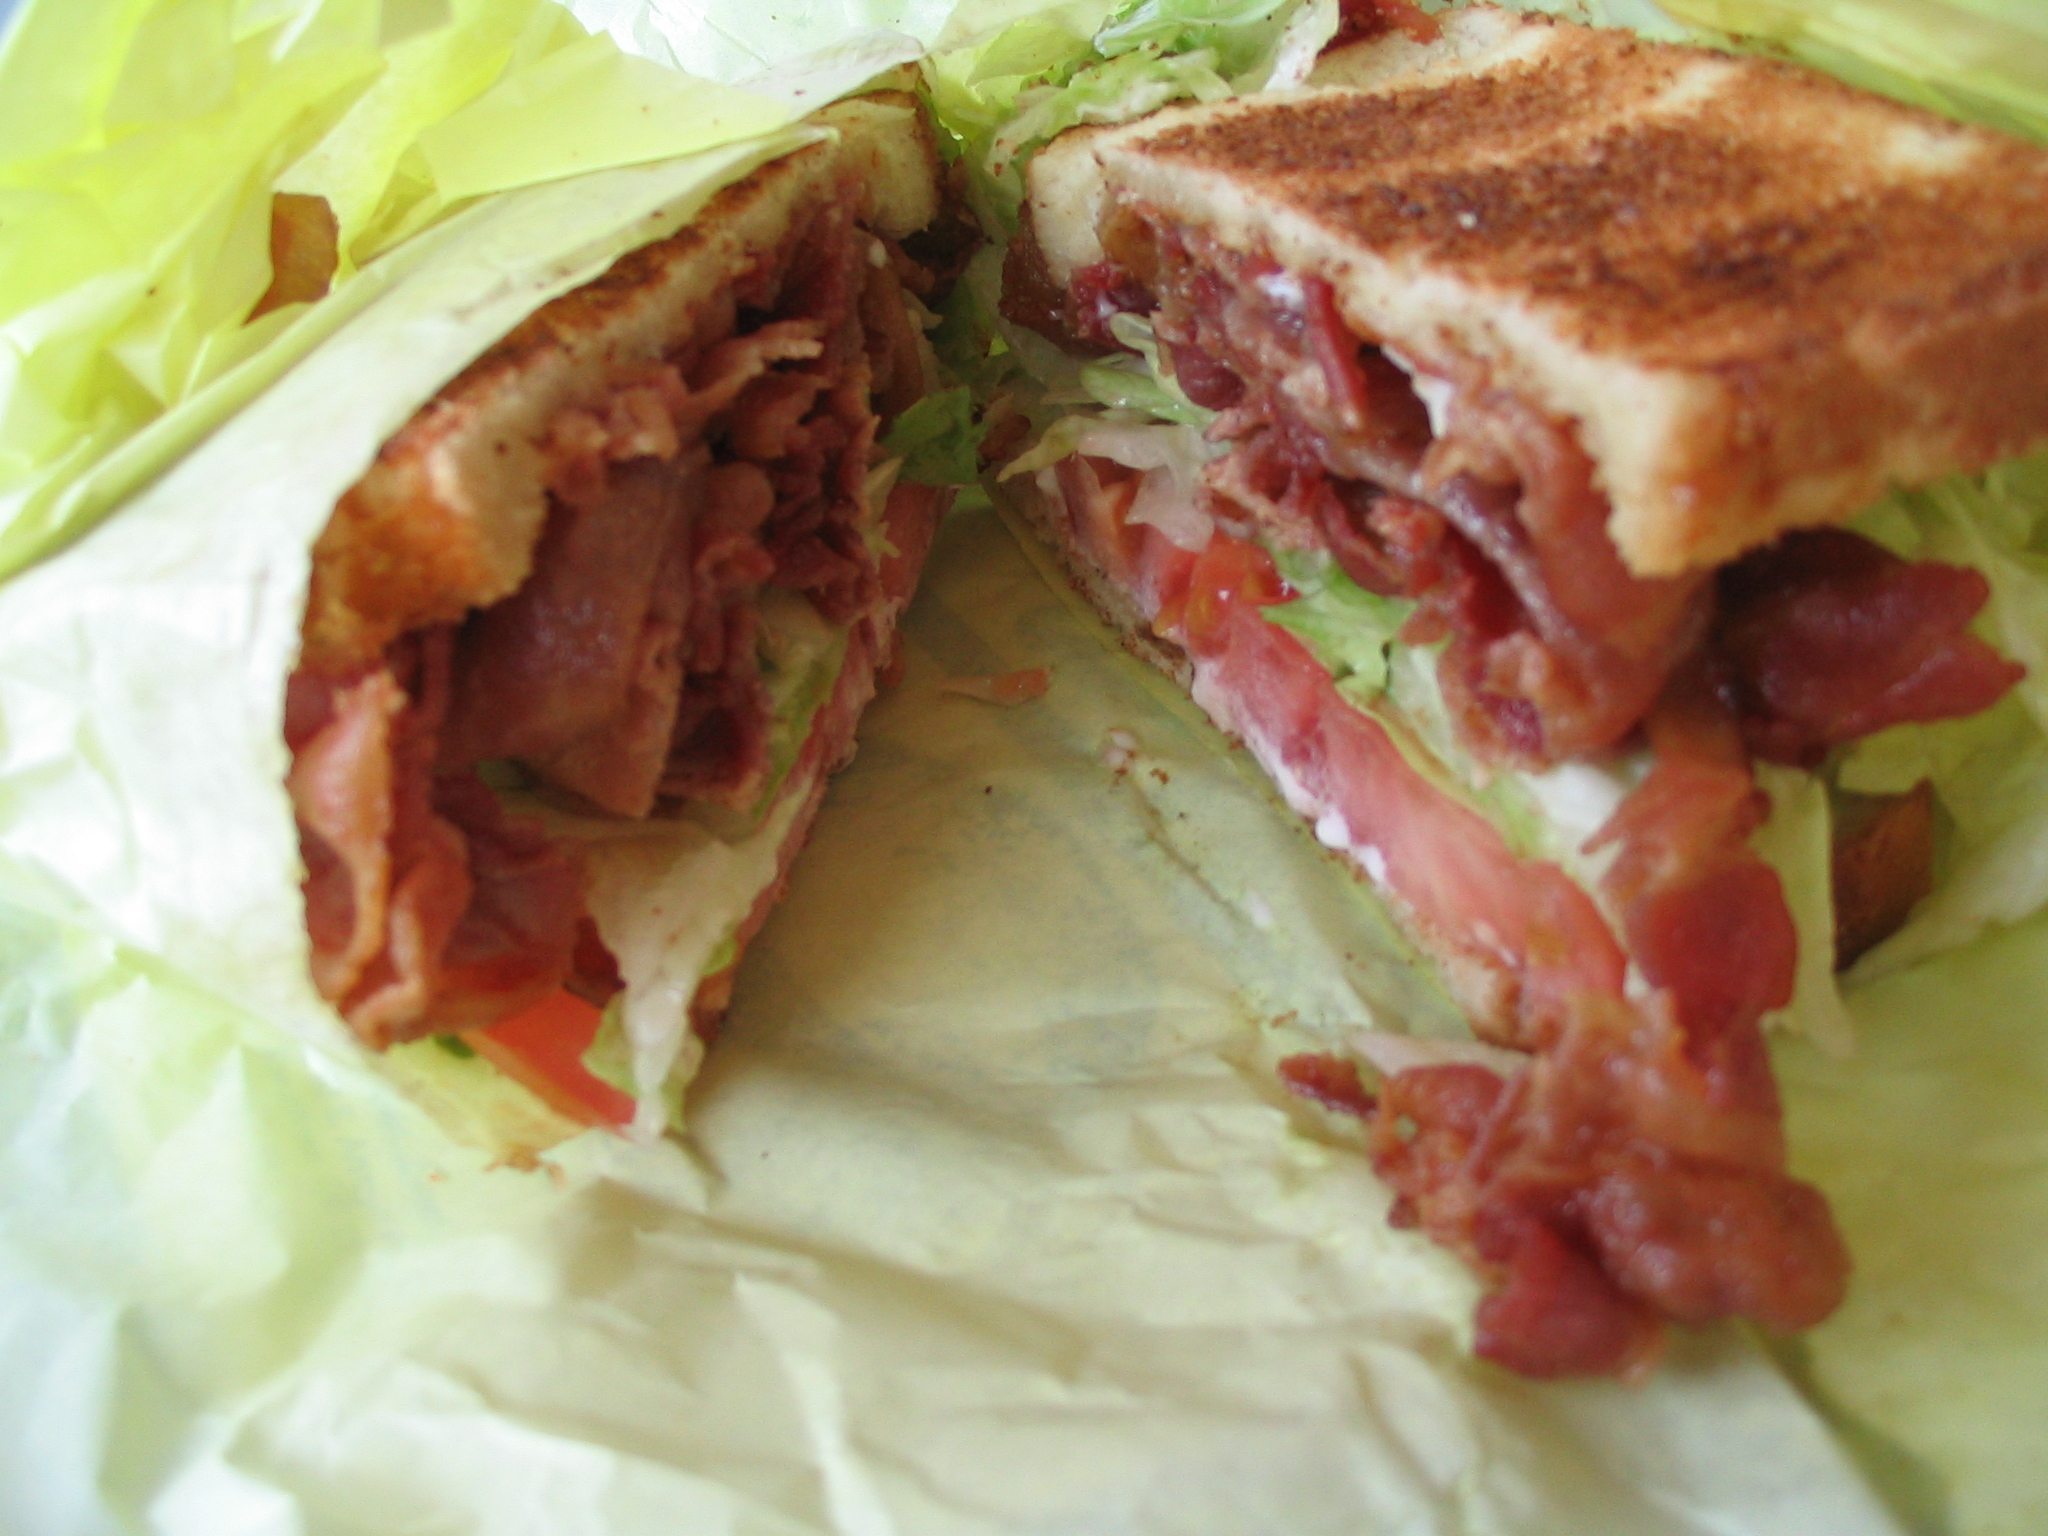 bacon, lettuce, and tomato (BLT) sandwich